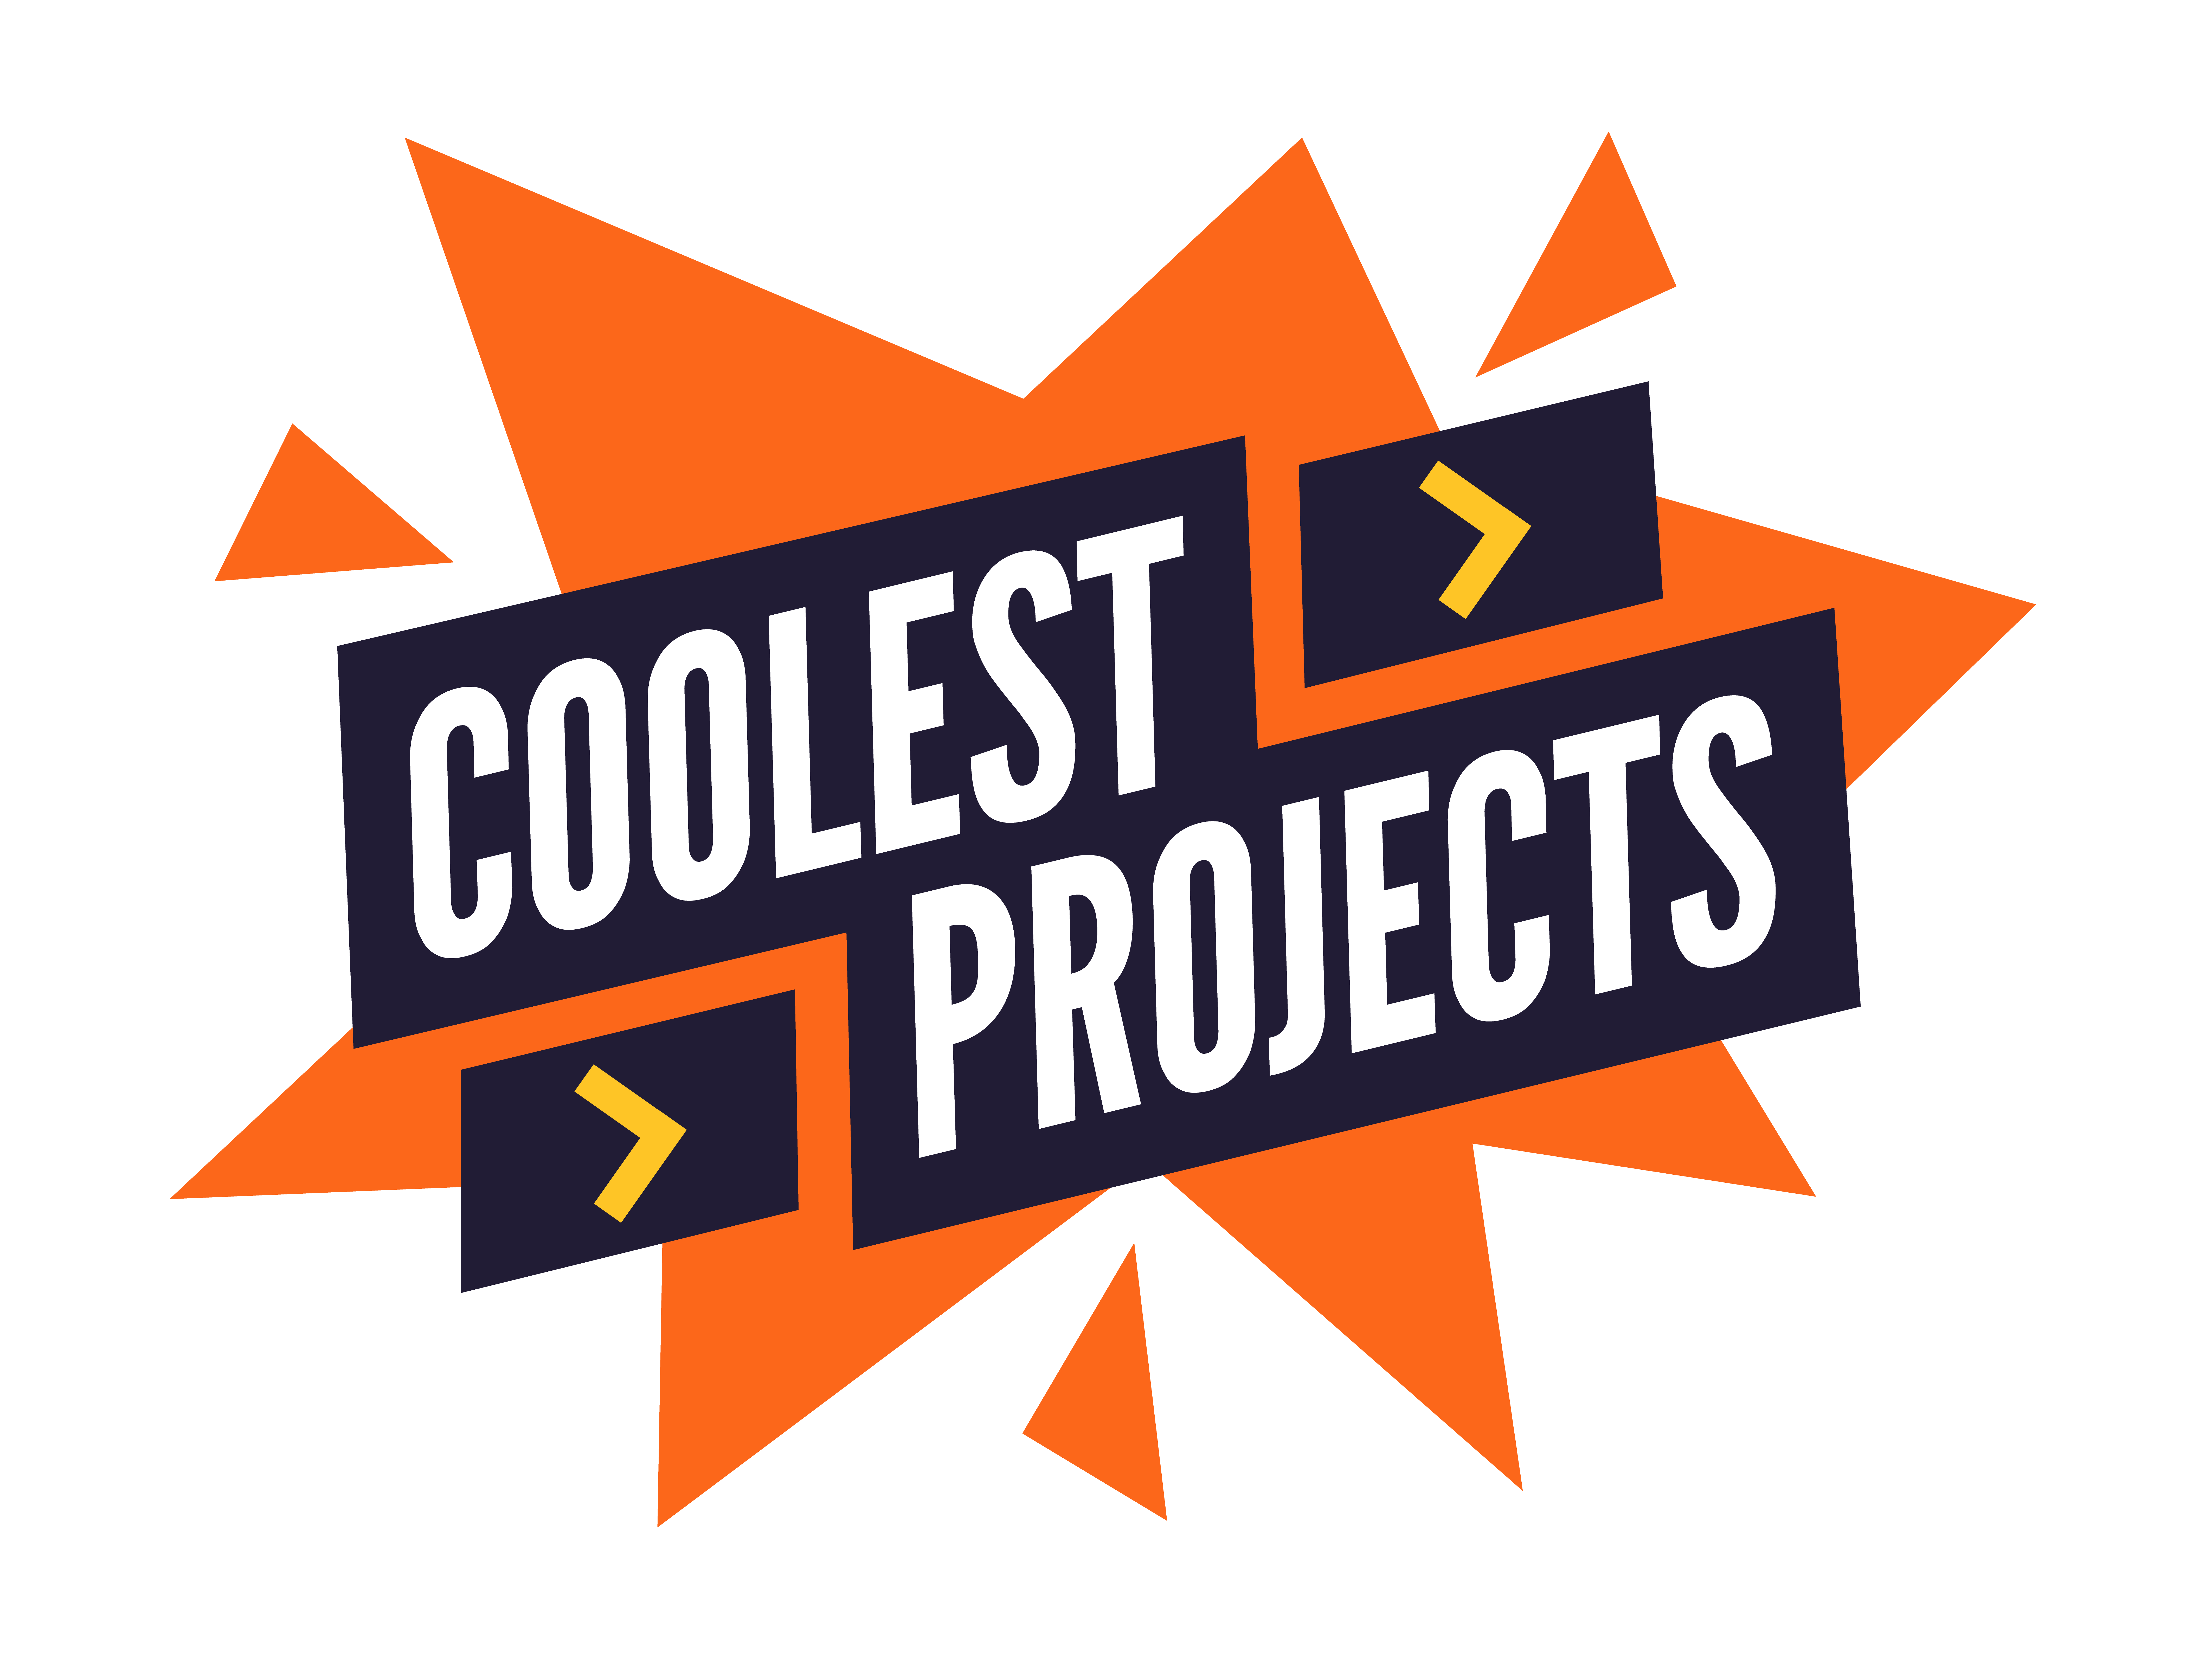 Coolest Projects Help Center home page